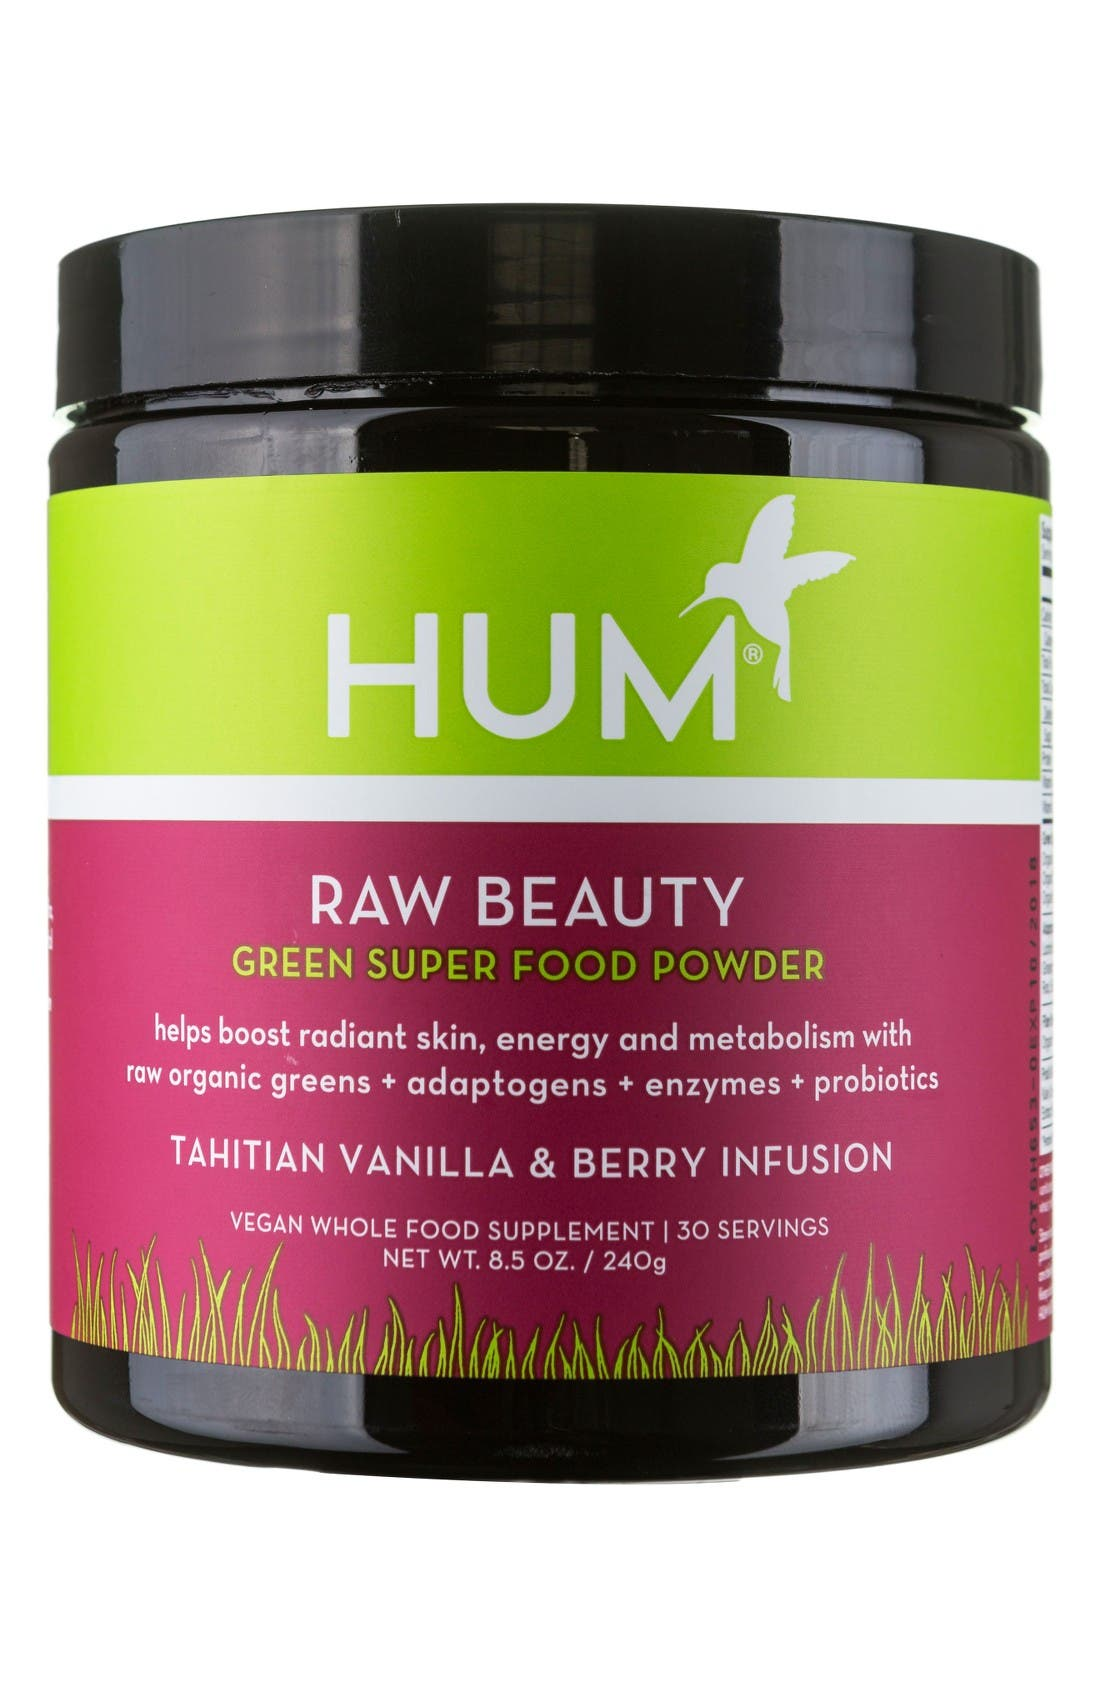 Alternate Image 1 Selected - Hum Nutrition Raw Beauty Tahitian Vanilla & Berry Infusion Skin & Energy Green Superfood Powder